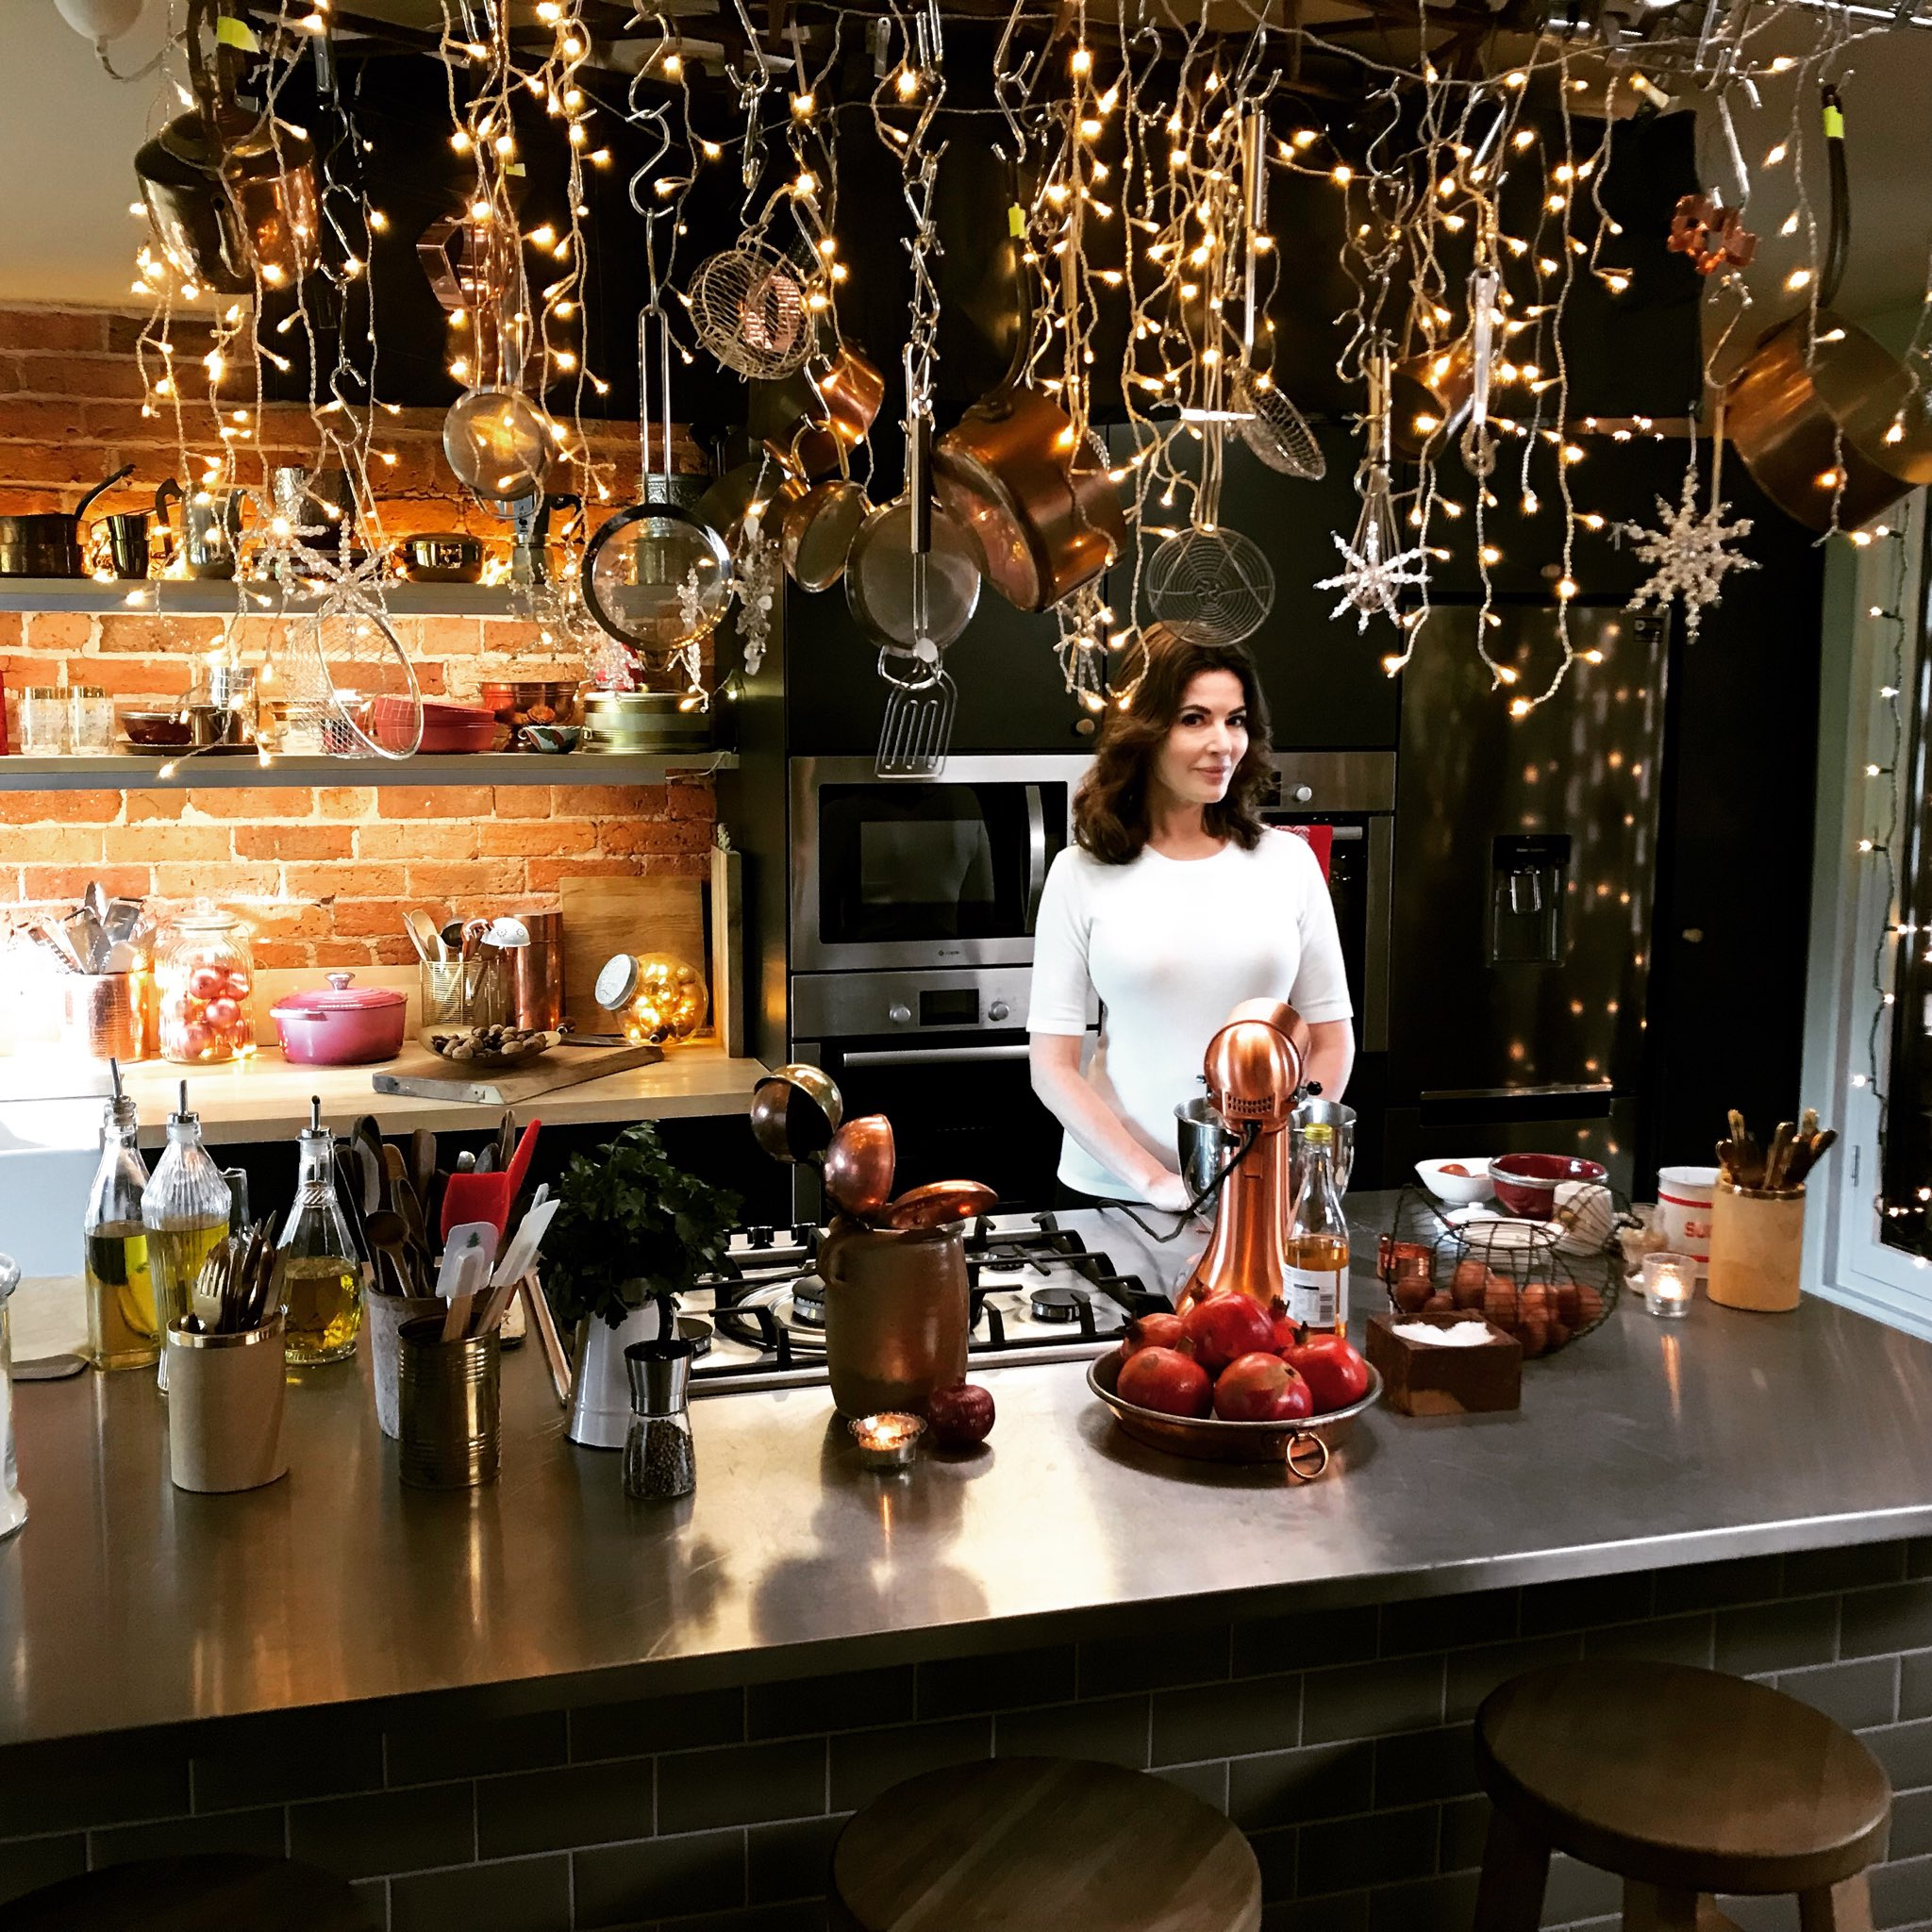 Nigella Lawson On Twitter Quot In My Christmas Kitchen For A